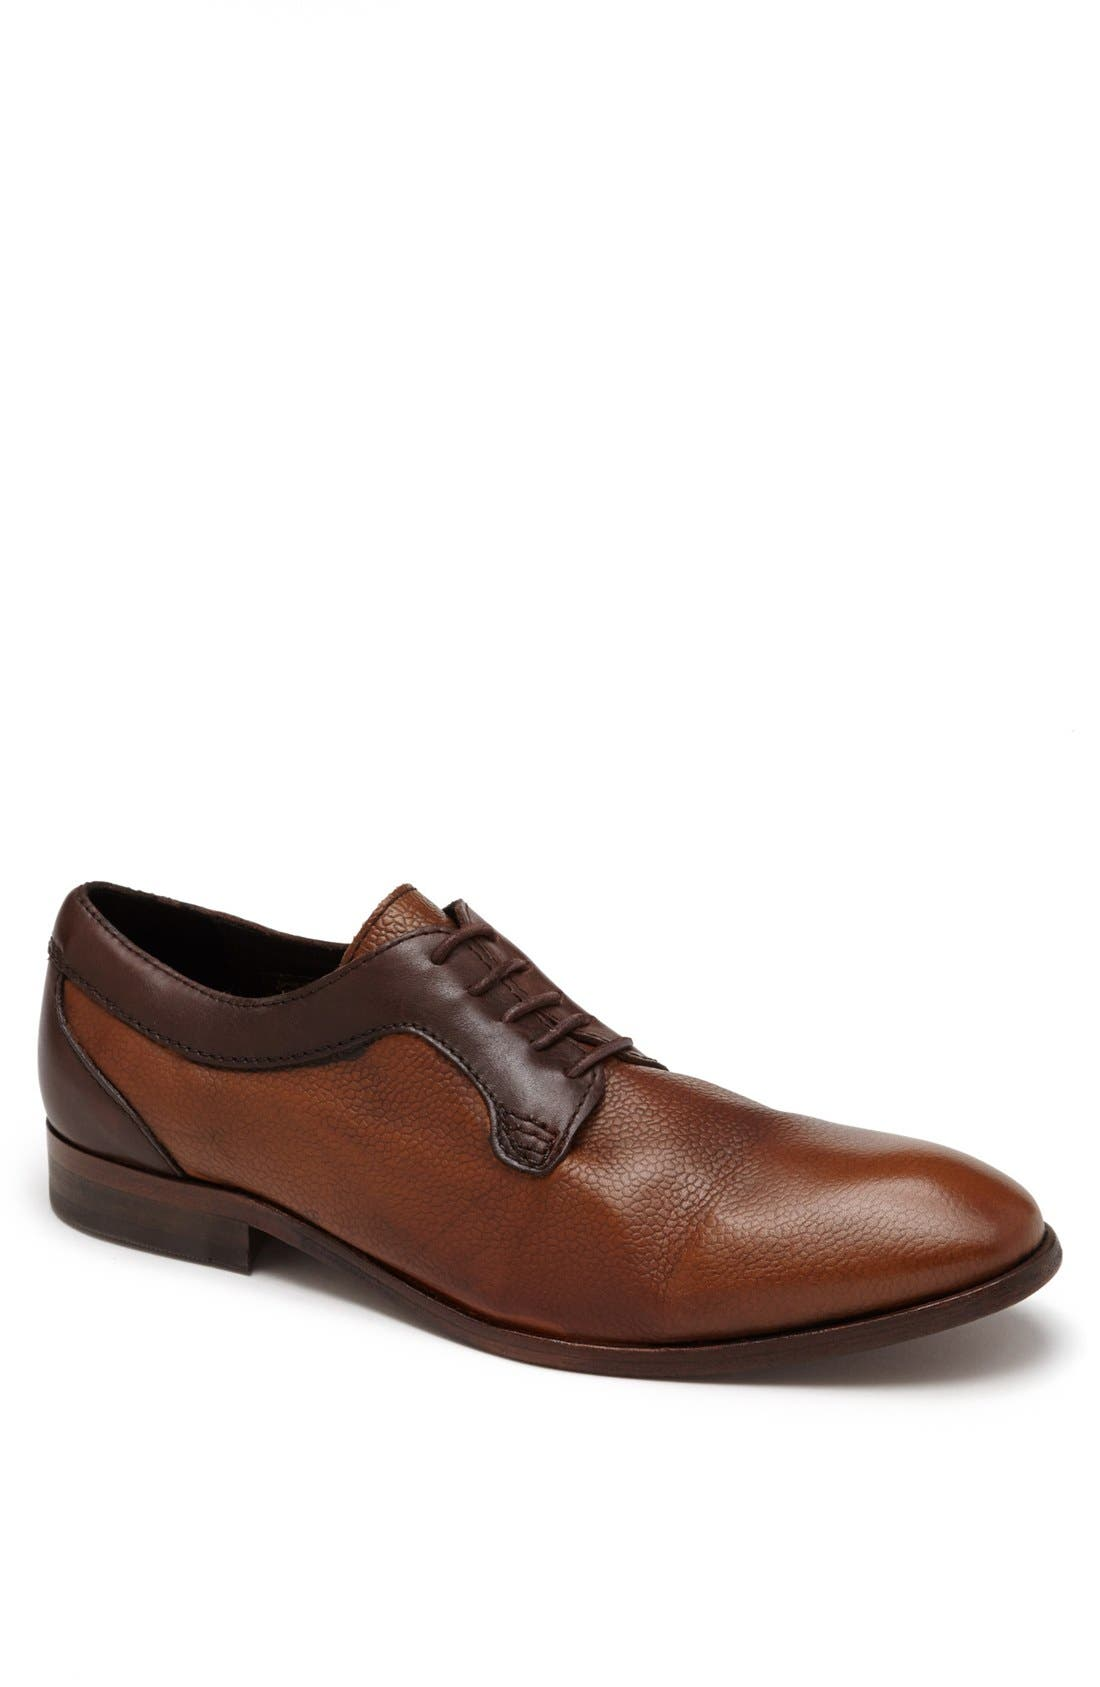 Main Image - H by Hudson 'Gould' Plain Toe Derby